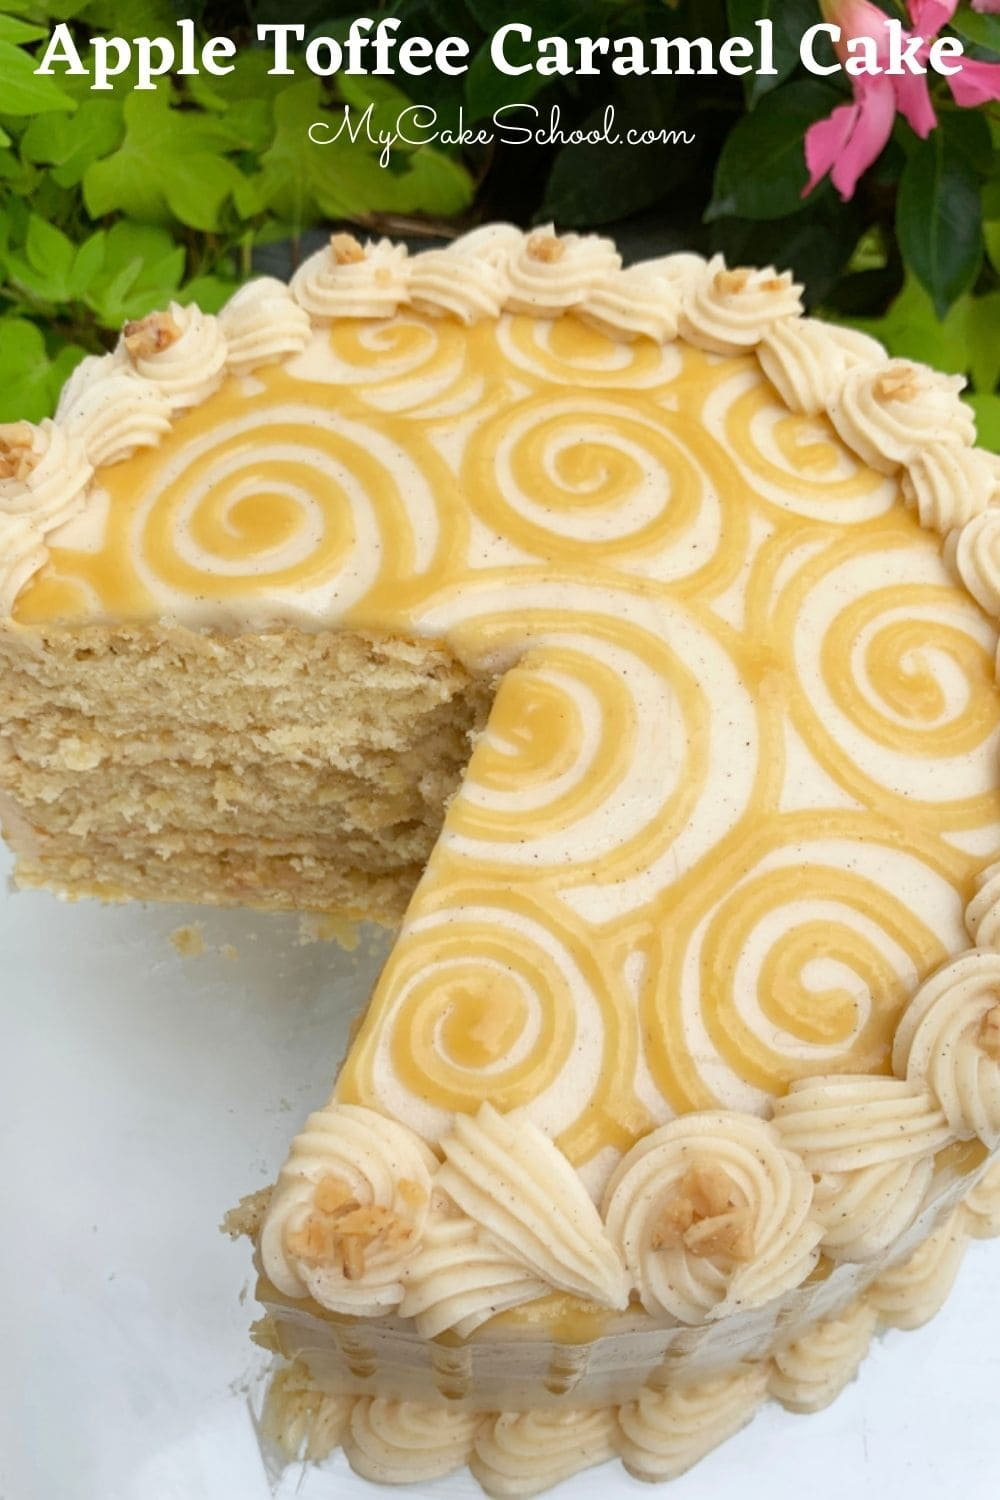 Apple Toffee Caramel Cake- So moist and delicious!